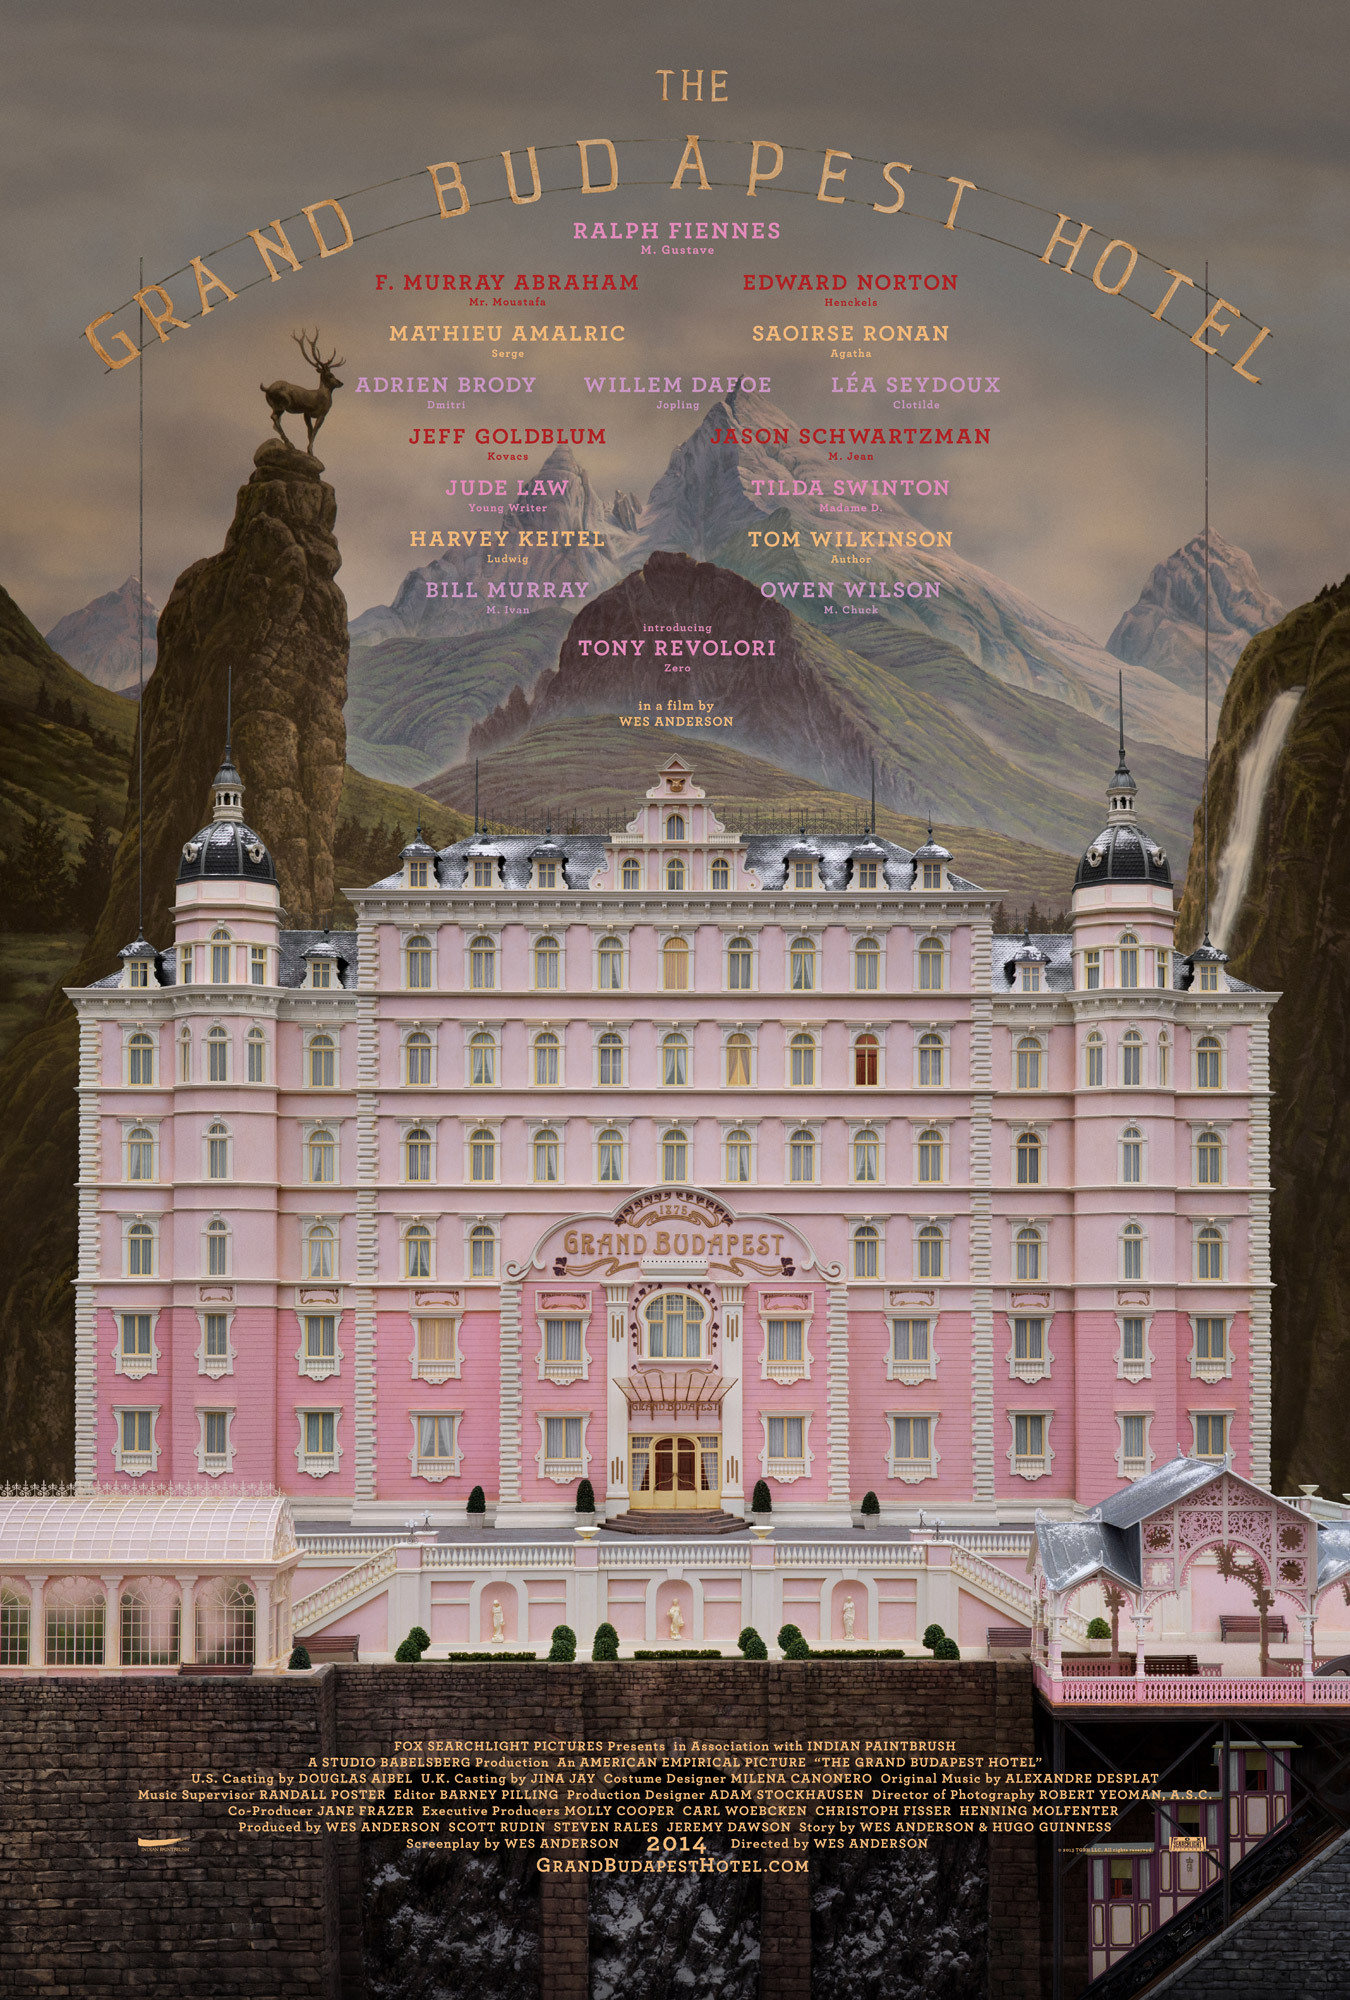 The Grand Budapest Hotel (2014) - IMDb